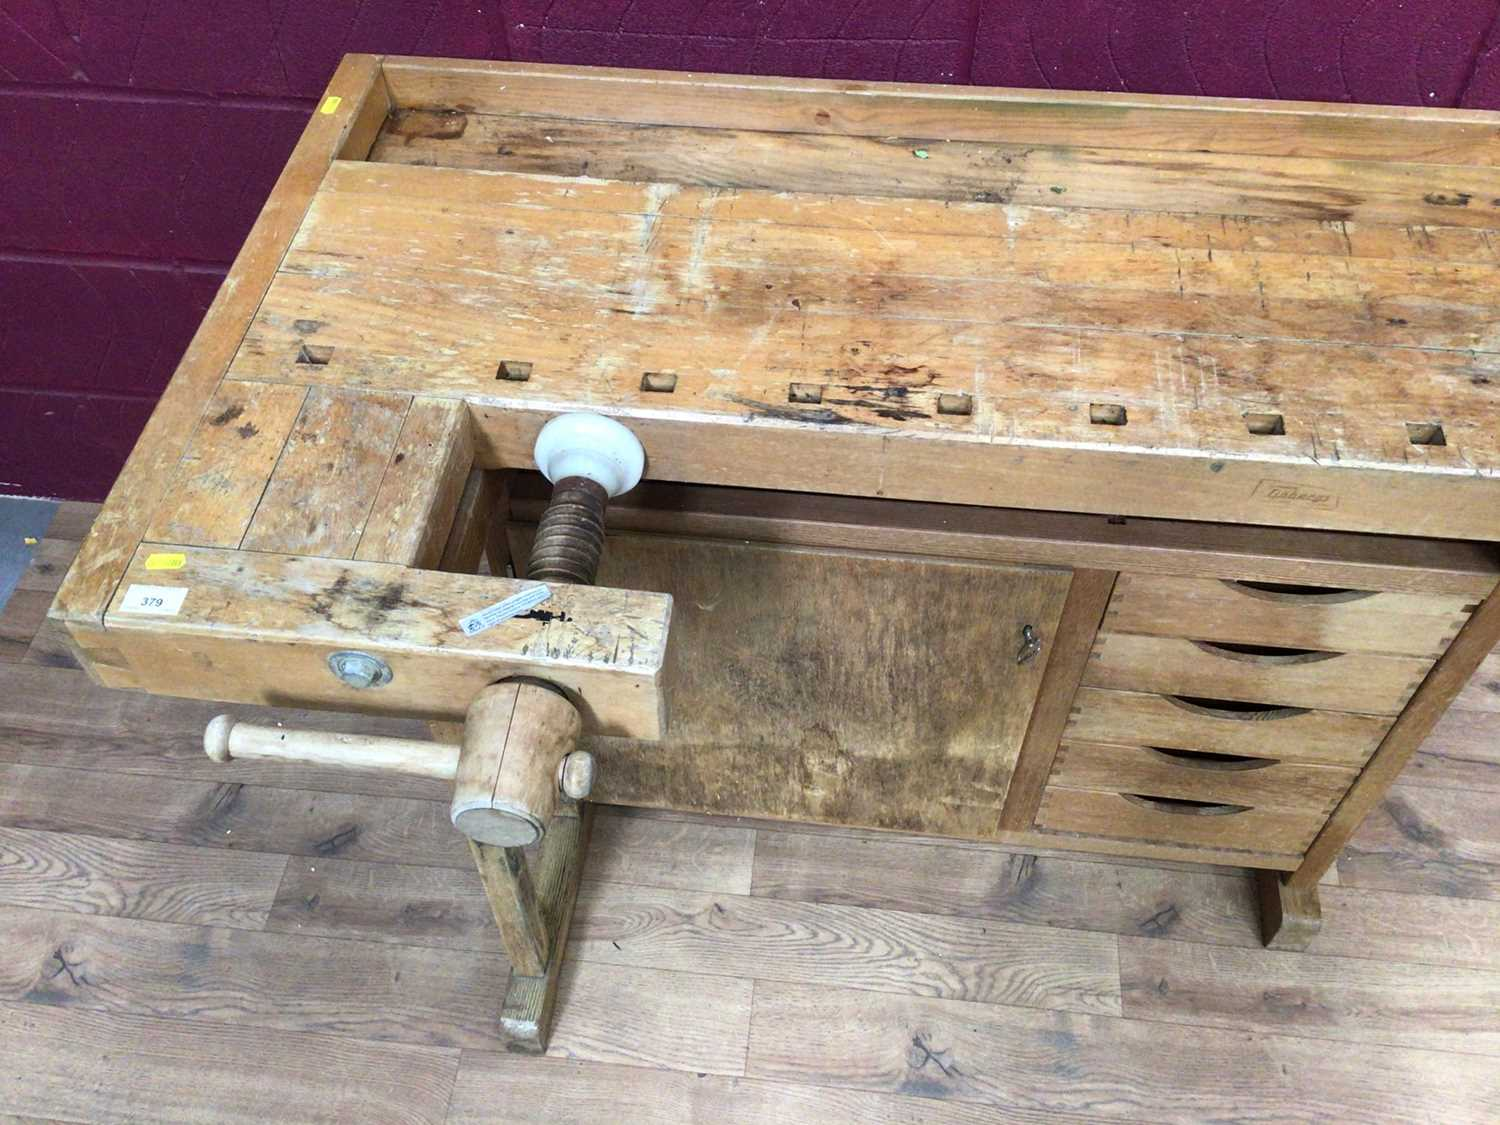 Scandanavian work bench by Gobergs of Sweden - Image 8 of 8